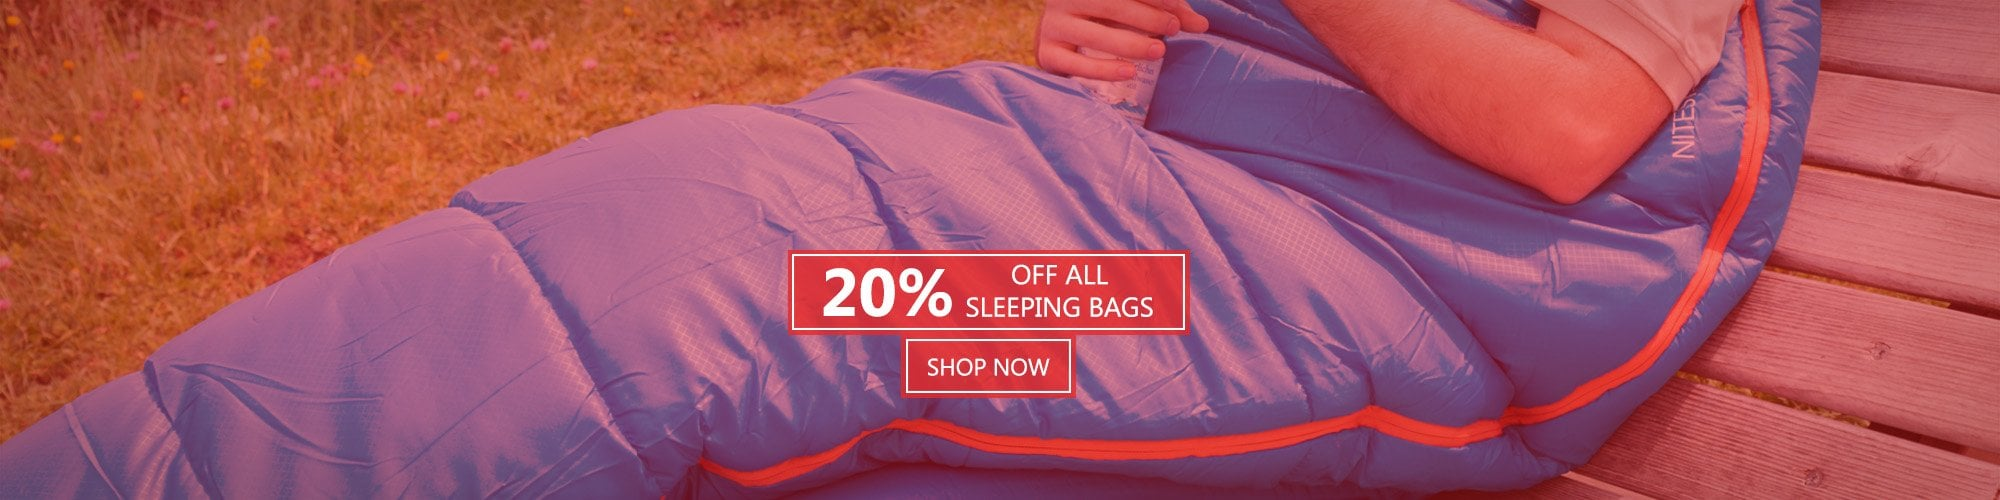 20% Off All Sleeping Bags